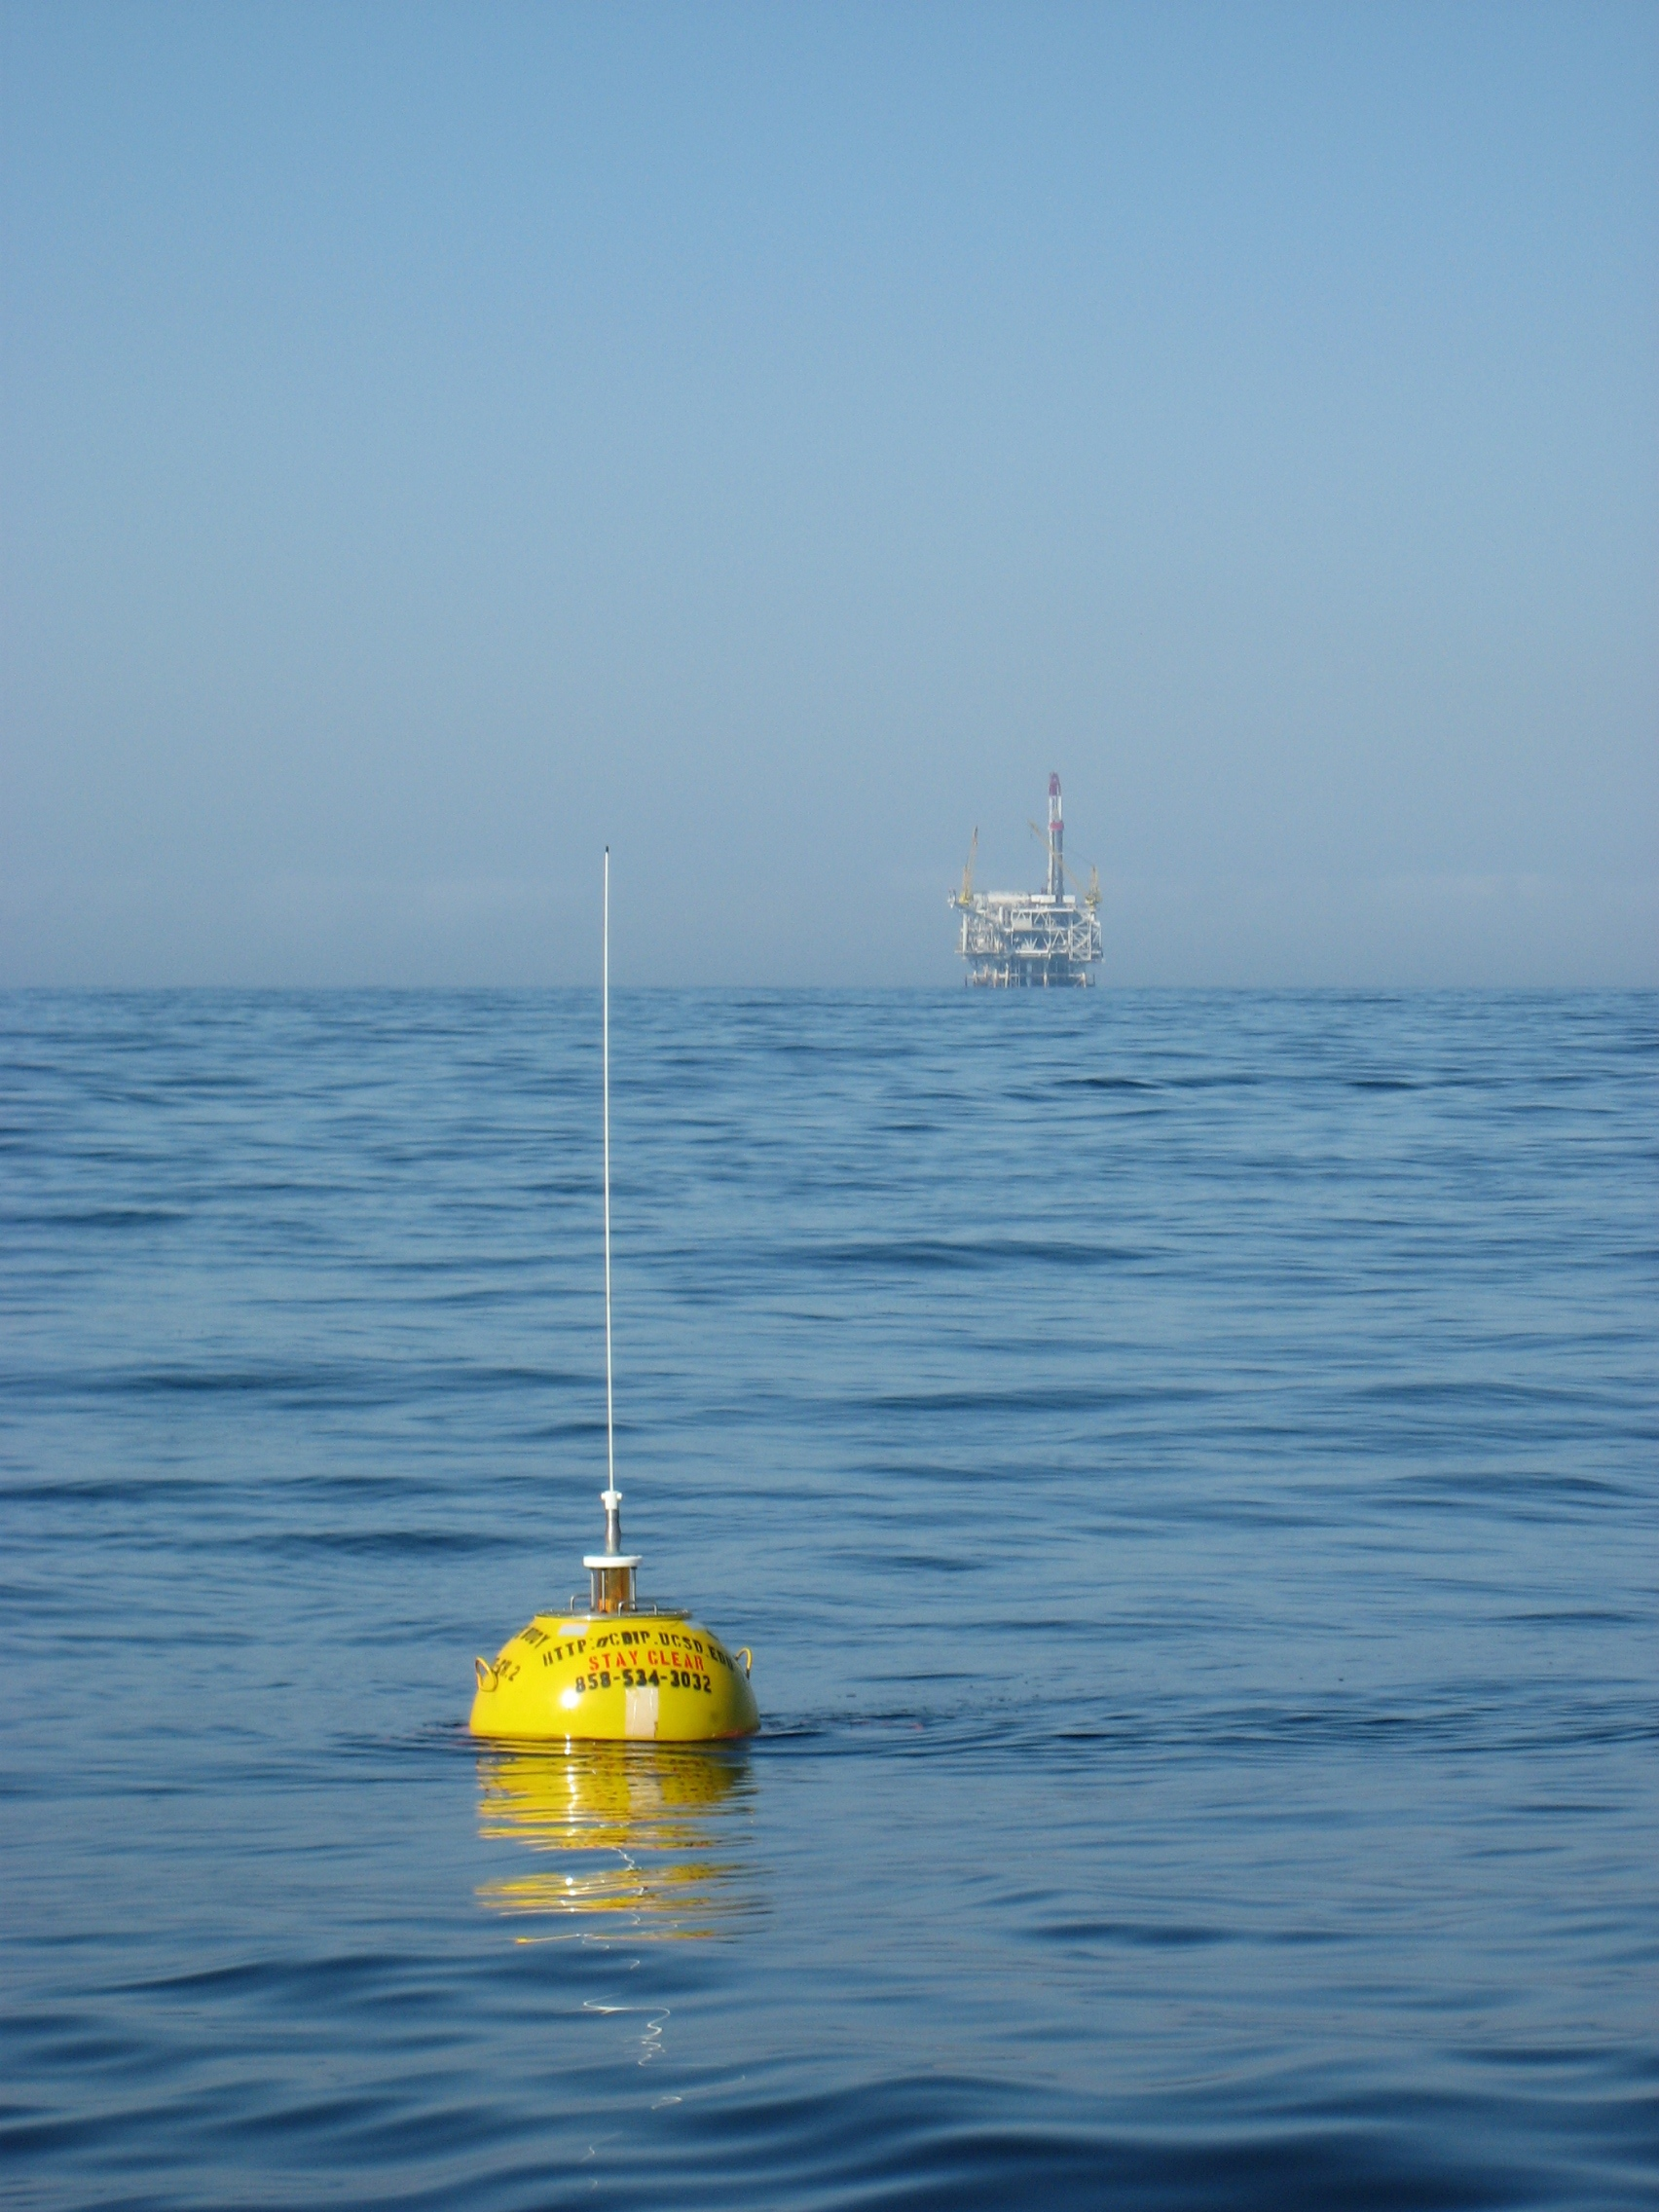 Newly swapped buoy 111 with oil rig in background